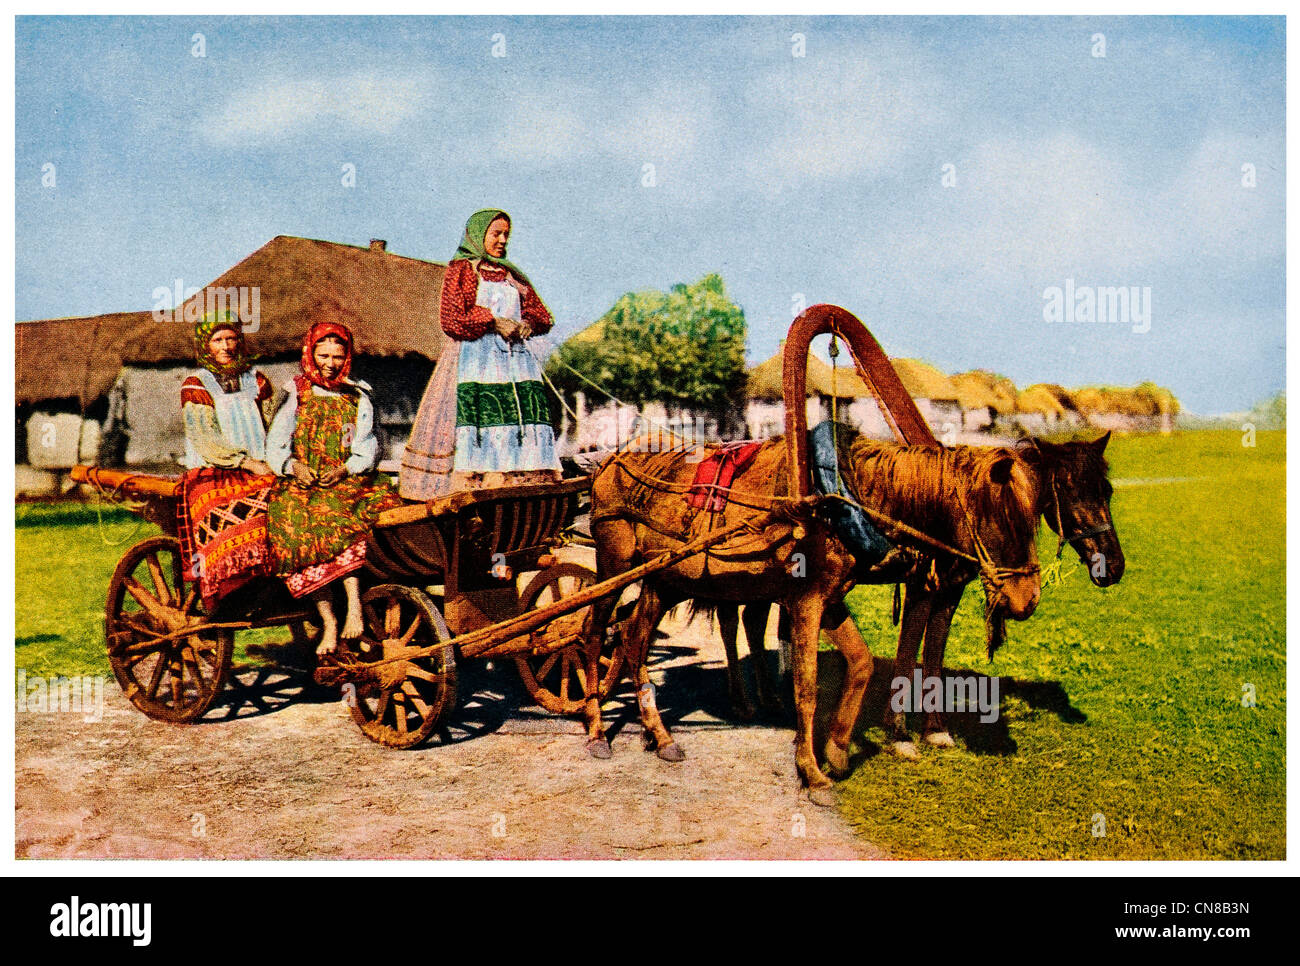 Vintage Horse Cart Farmer High Resolution Stock Photography And Images Alamy